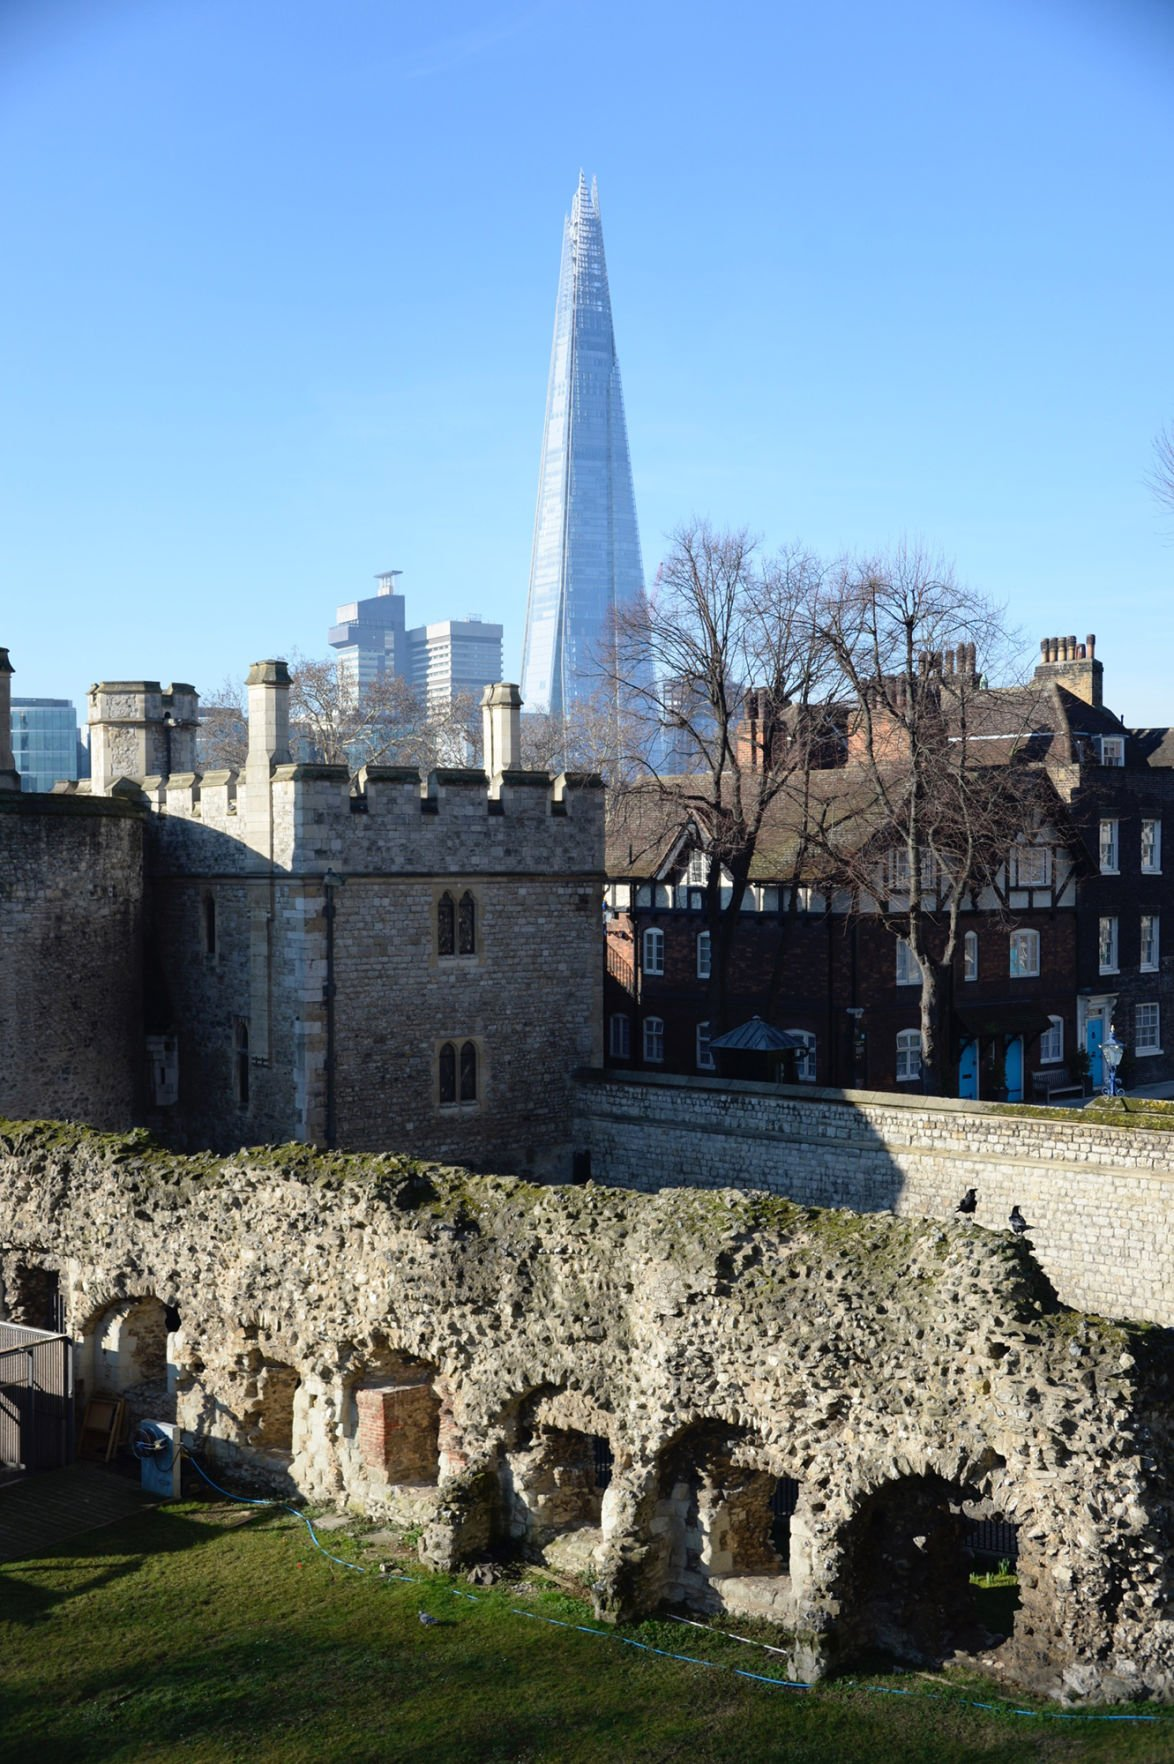 London old and new: The Shard tower rises above remnants of the Roman wall dating from 200 A.D. near the Tower of London.